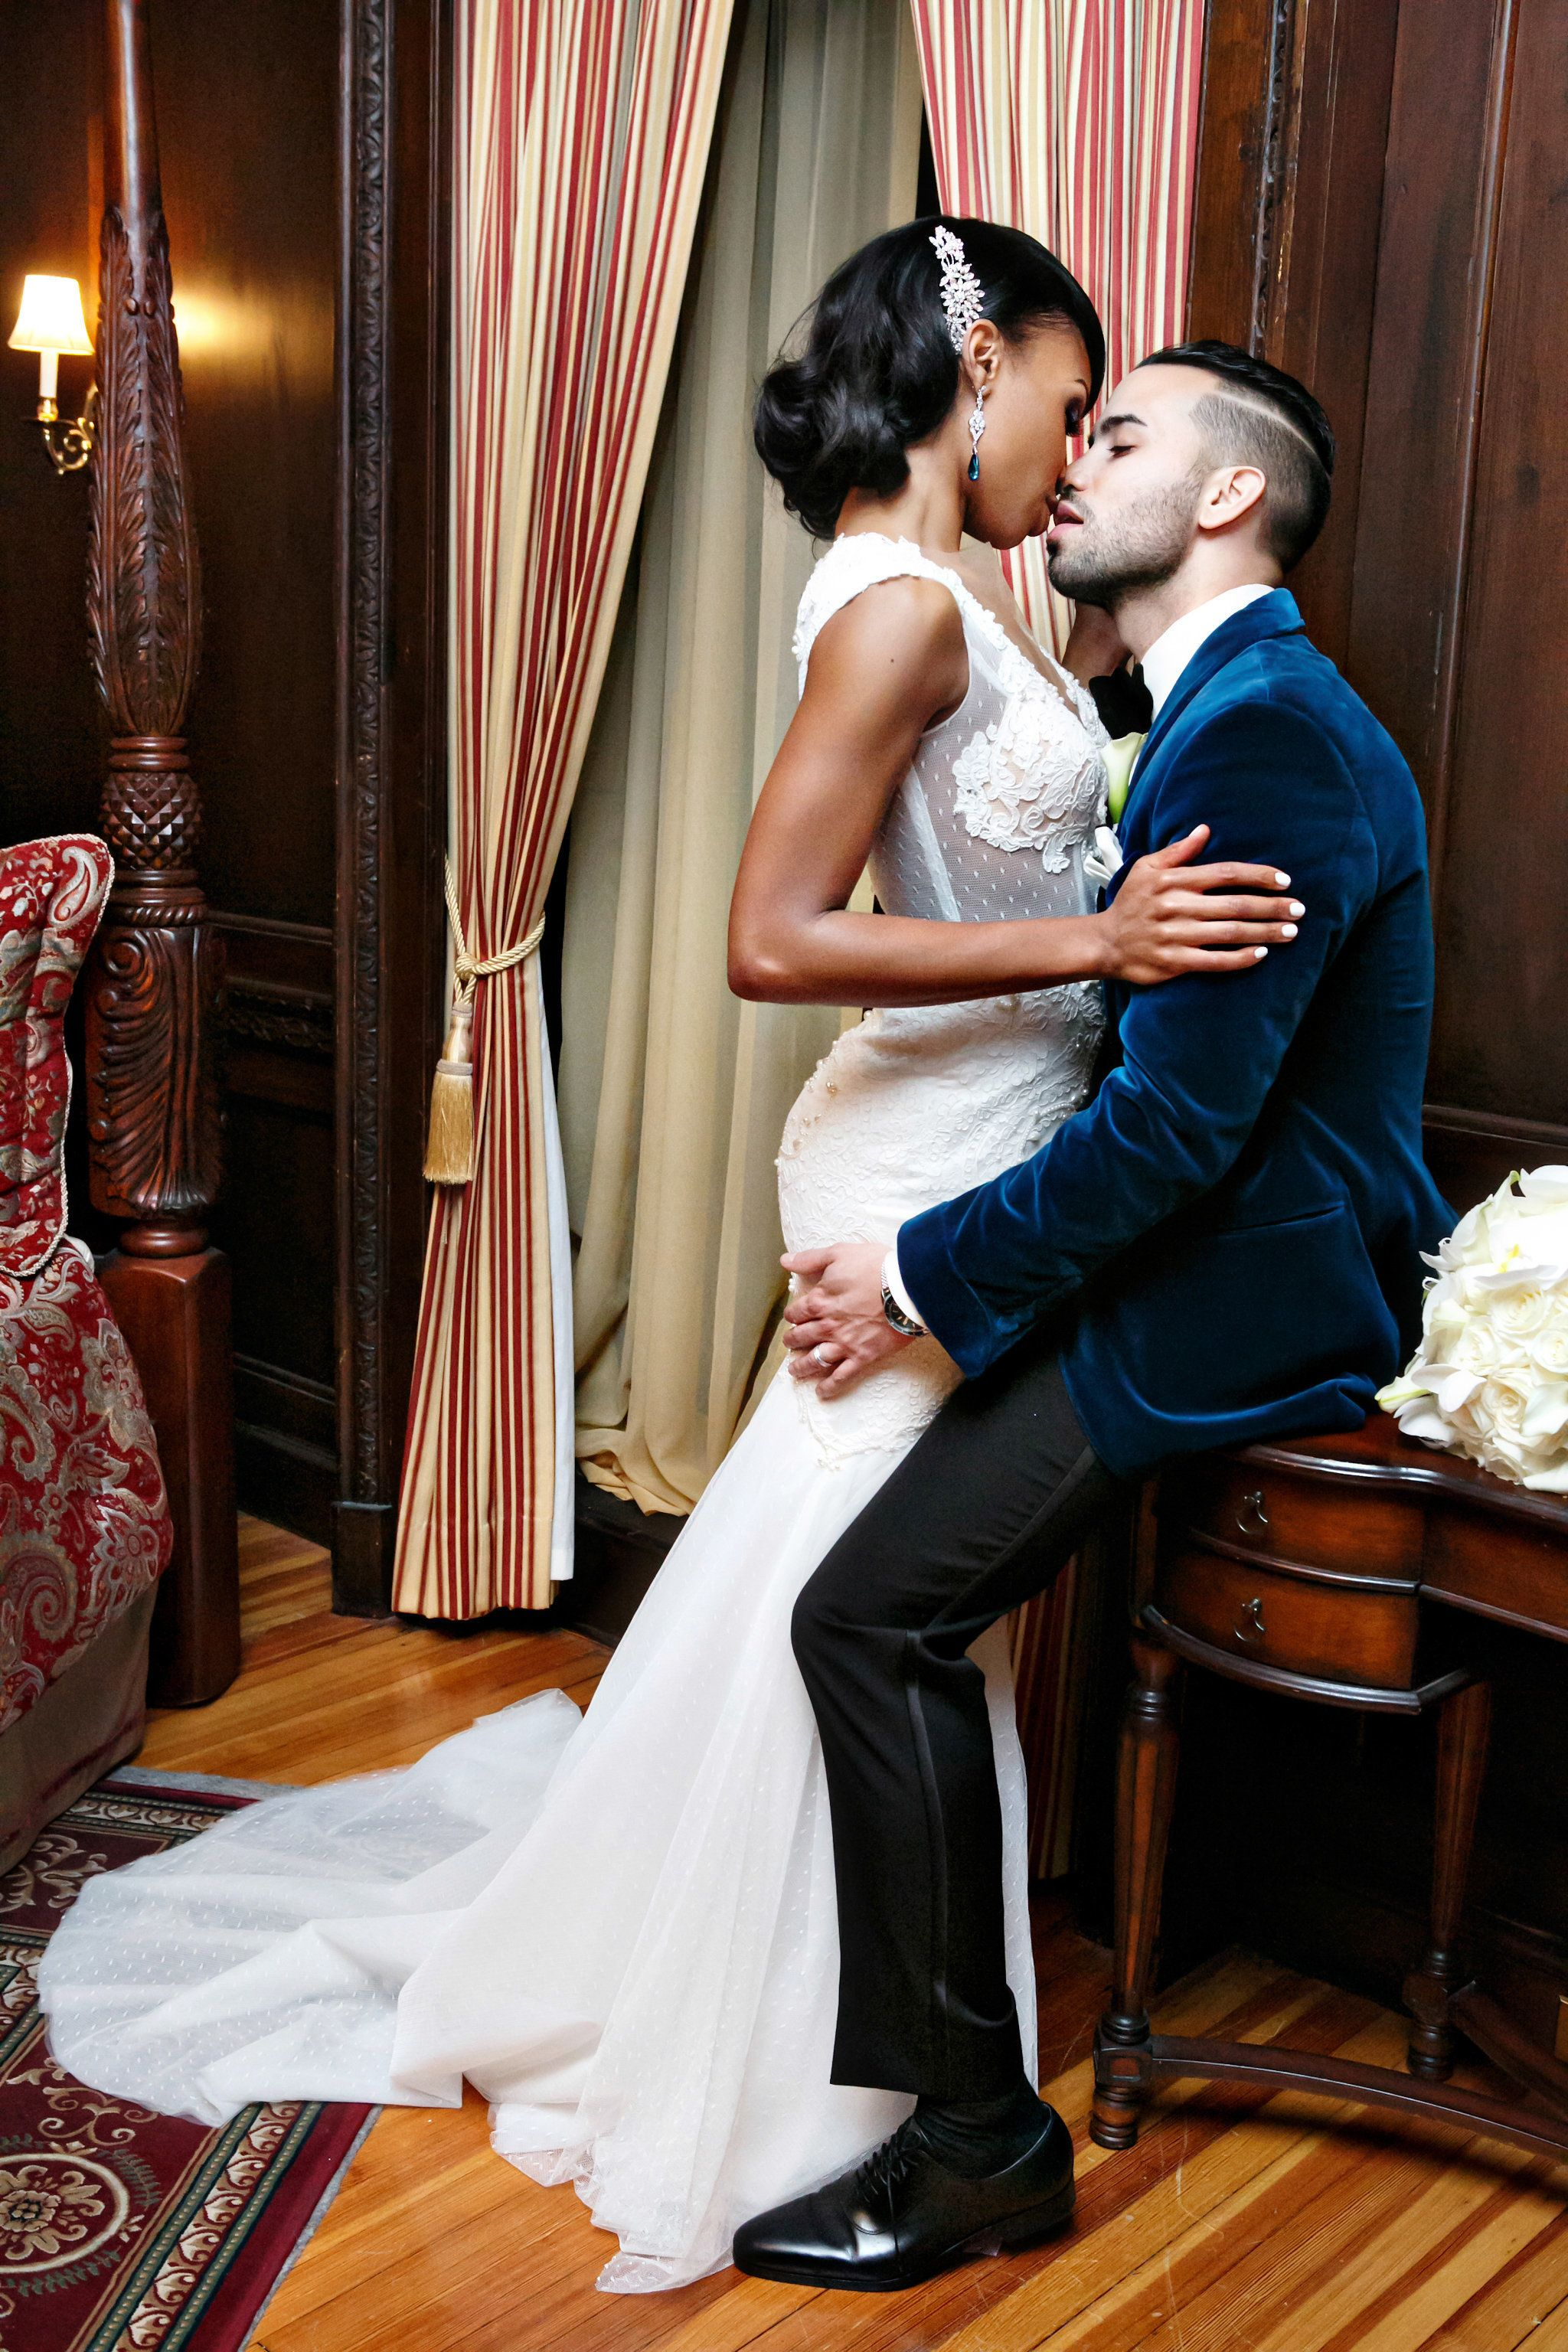 Pin on Interracial Dating, Love, and Romance (Black Men